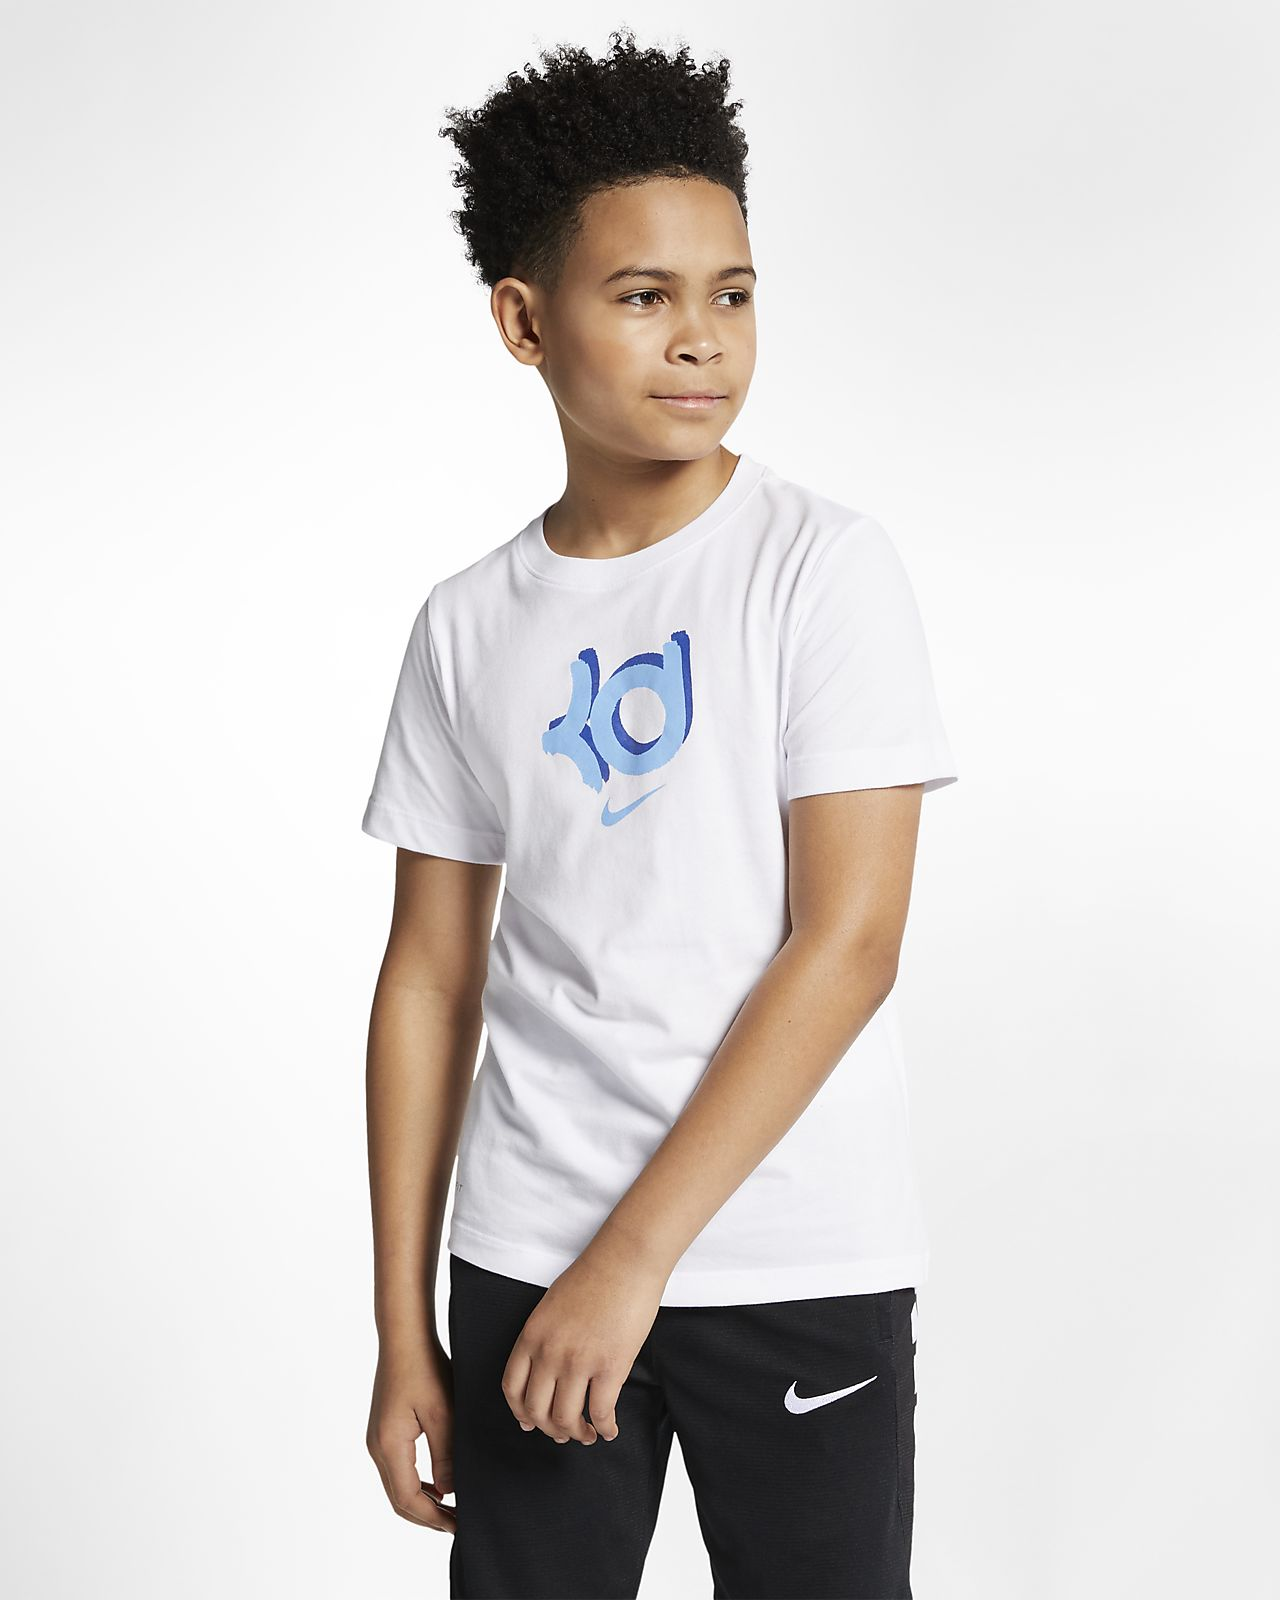 f815f49f Nike Dri-FIT KD Big Kids' (Boys') Basketball T-Shirt. Nike.com